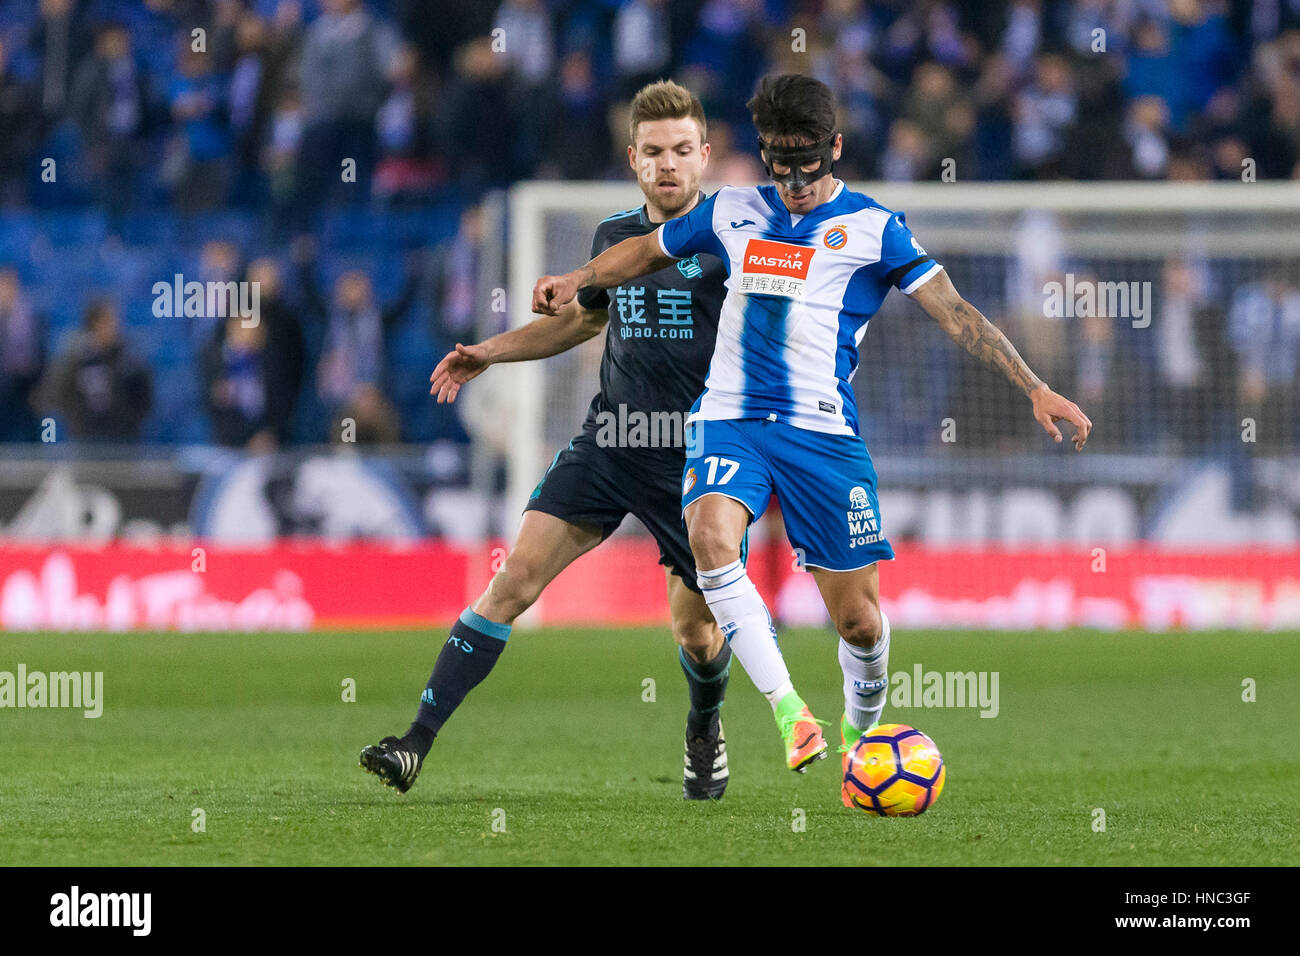 February 10, 2017: Hernan Perez during the match between RCD Espanyol vs Real Sociedad, for the round 22 of the - Stock Image